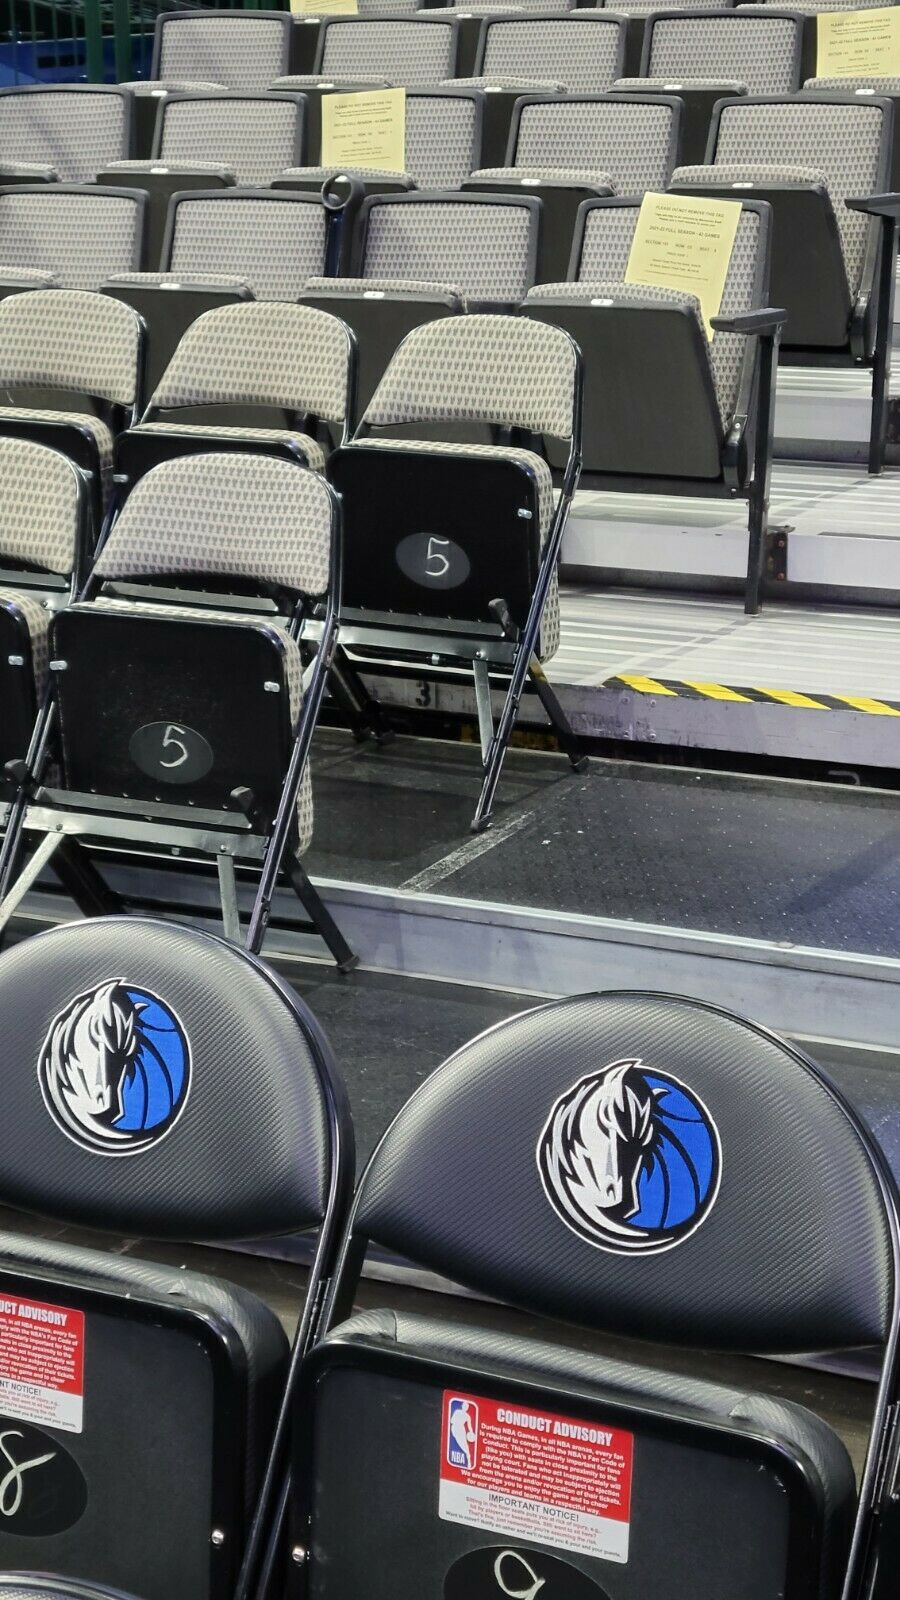 Dallas Mavericks Vs. Los Angeles Clippers 2/12/22 Section 123 - 1st 2nd Row - $799.99